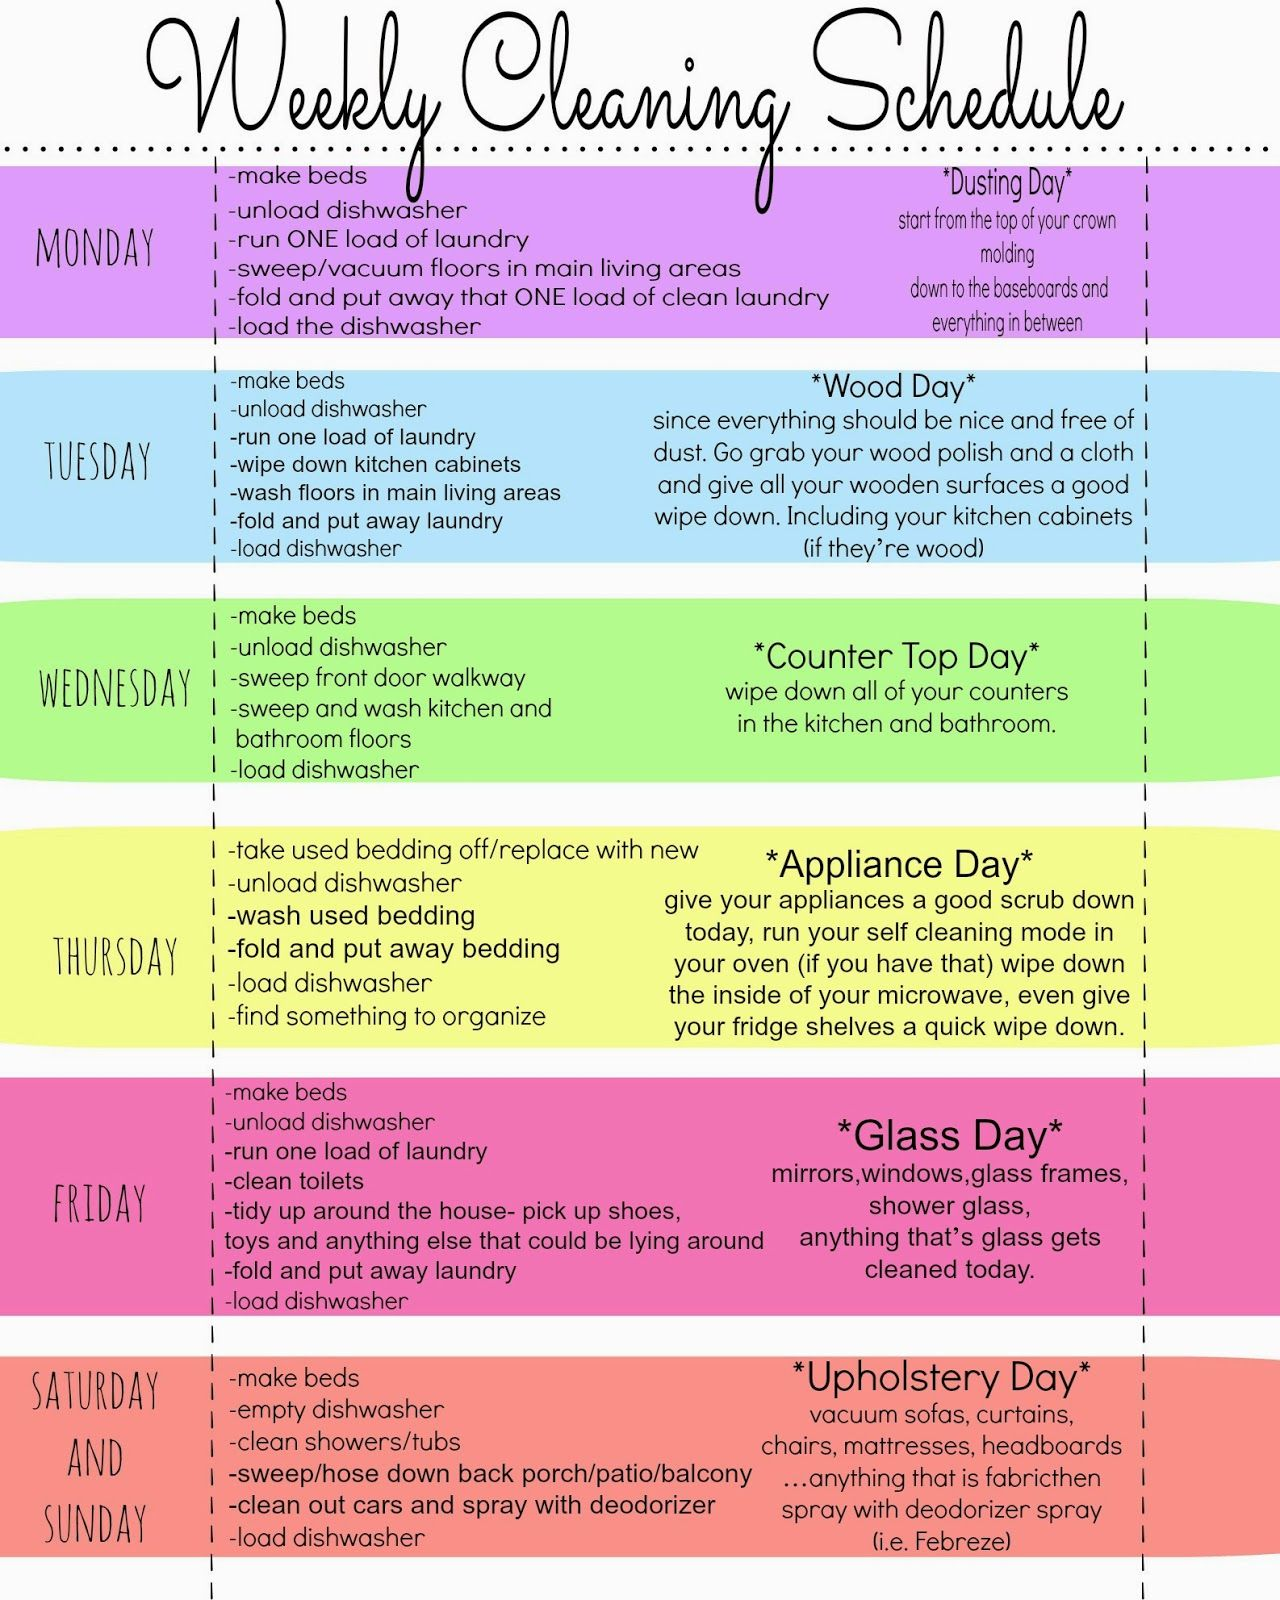 To Do Lists Help With Managing